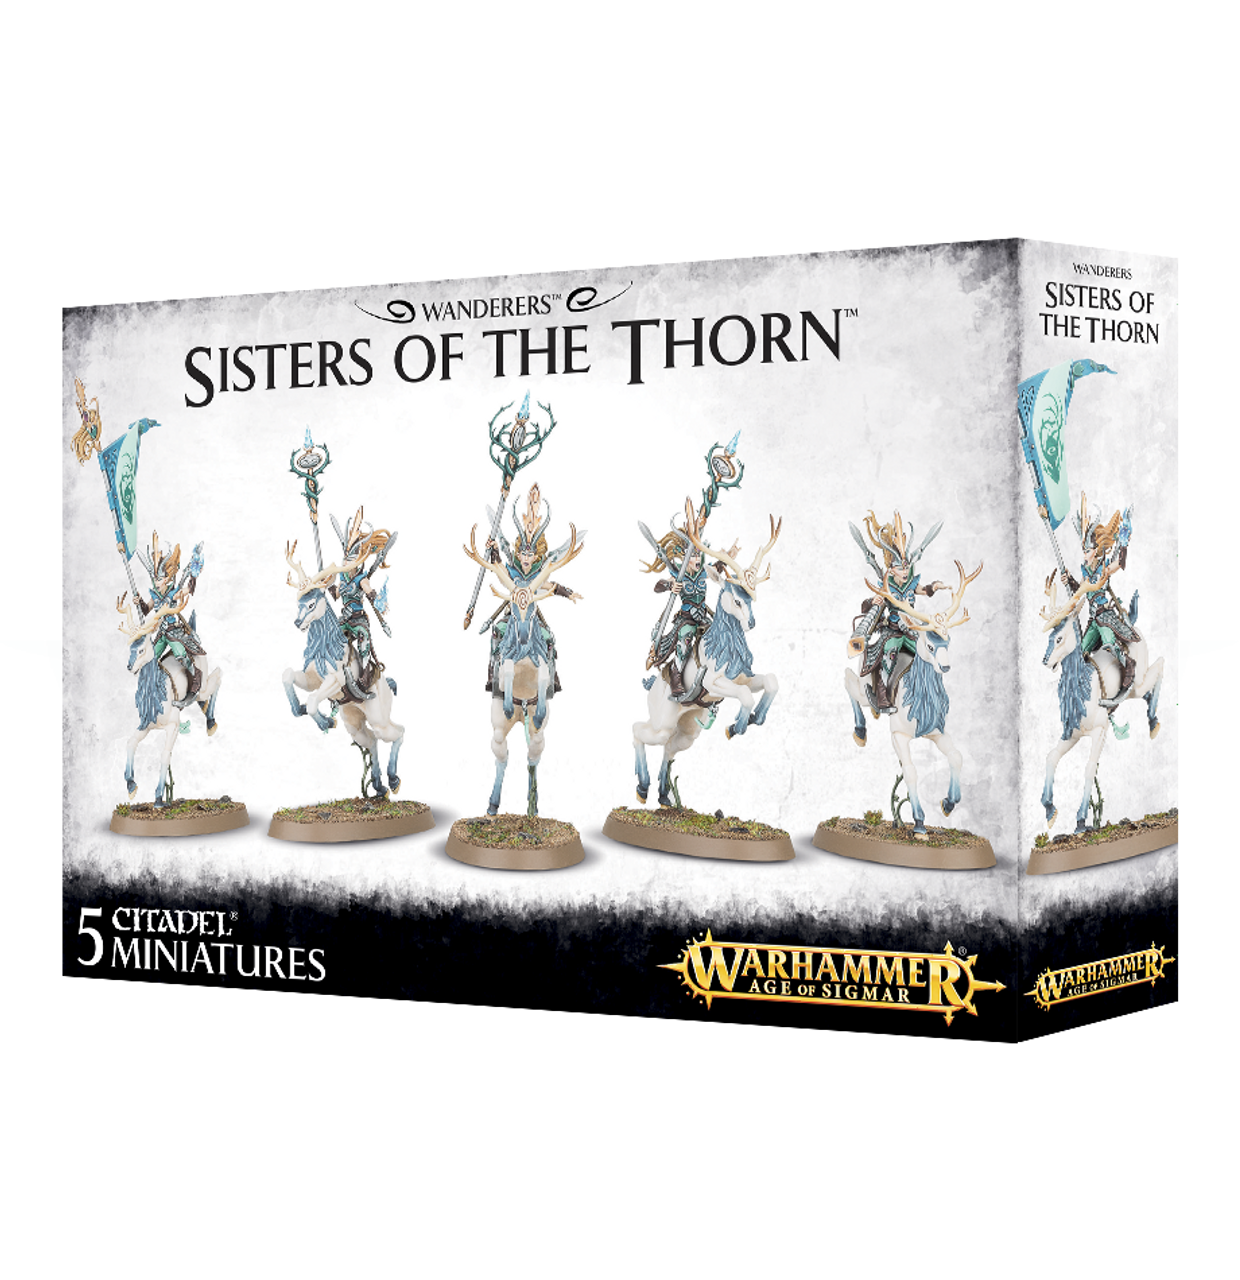 GW92-08  WANDERERS SISTERS OF THE THORN